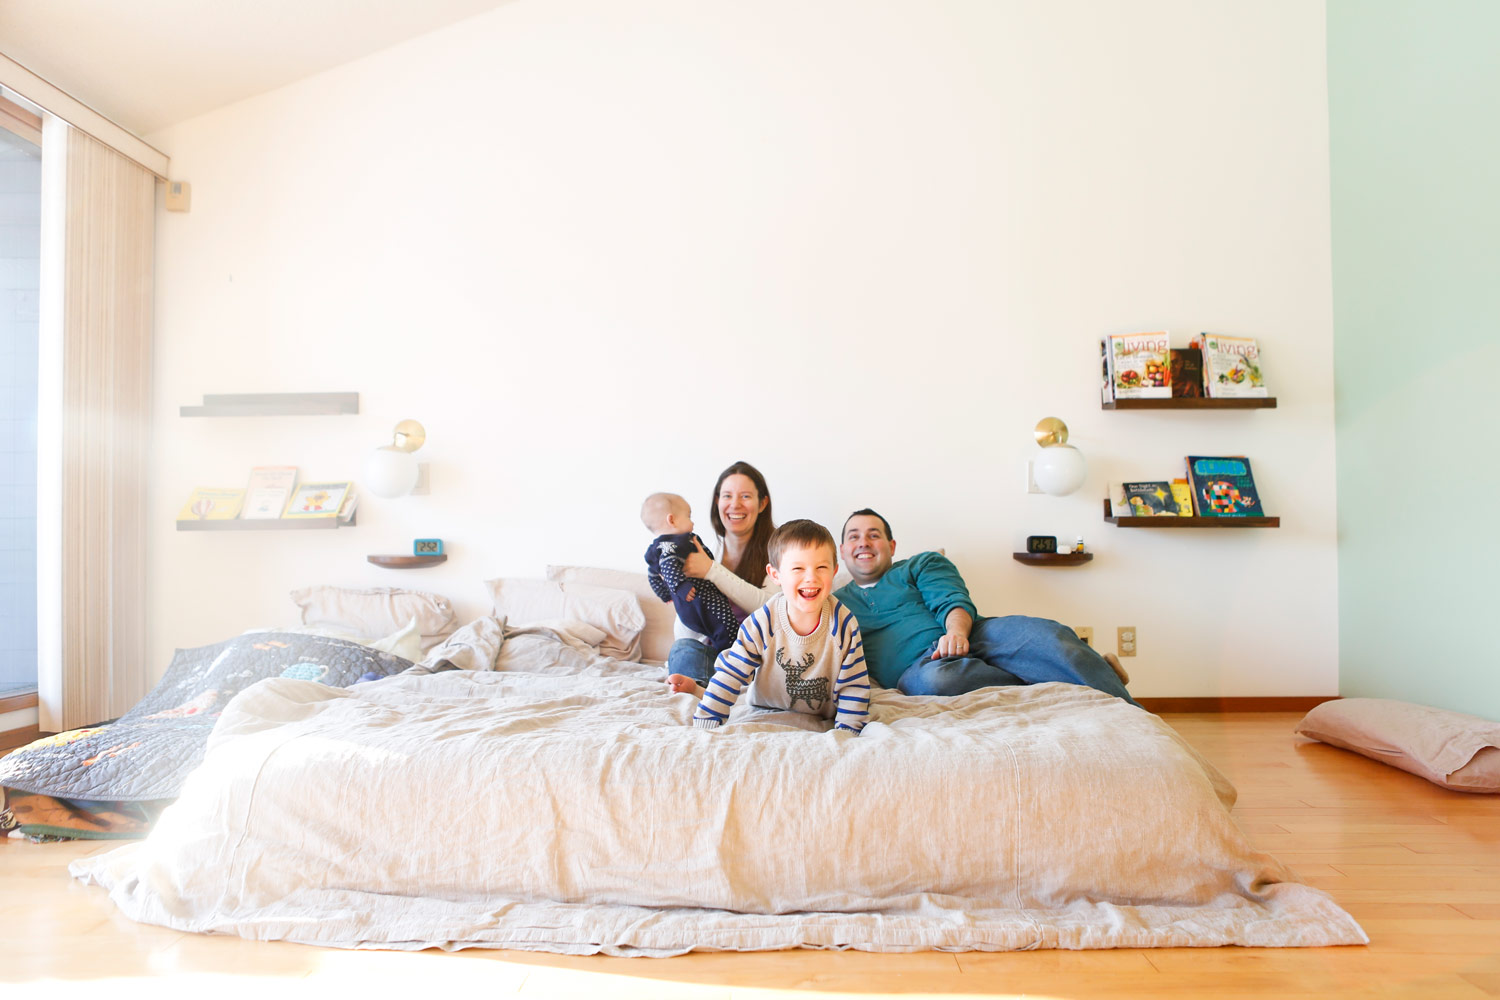 family-portrait-attachment-parenting-family-bed-barrington-ruthie-hauge-photography-natural-candid-documentary.jpg